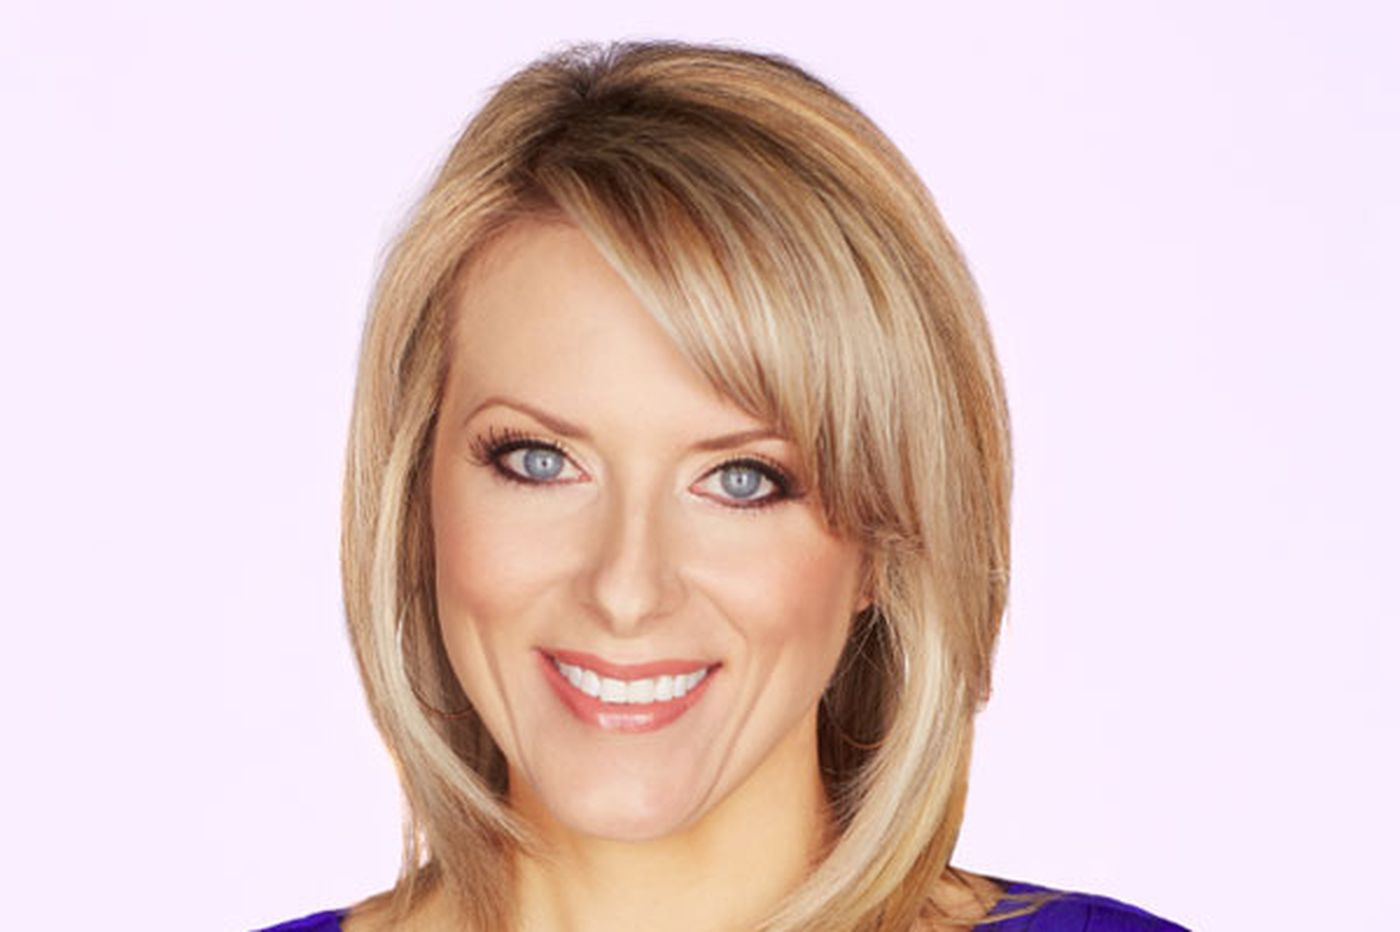 After miscarriages, Fox 29's Kerry Barrett is expecting